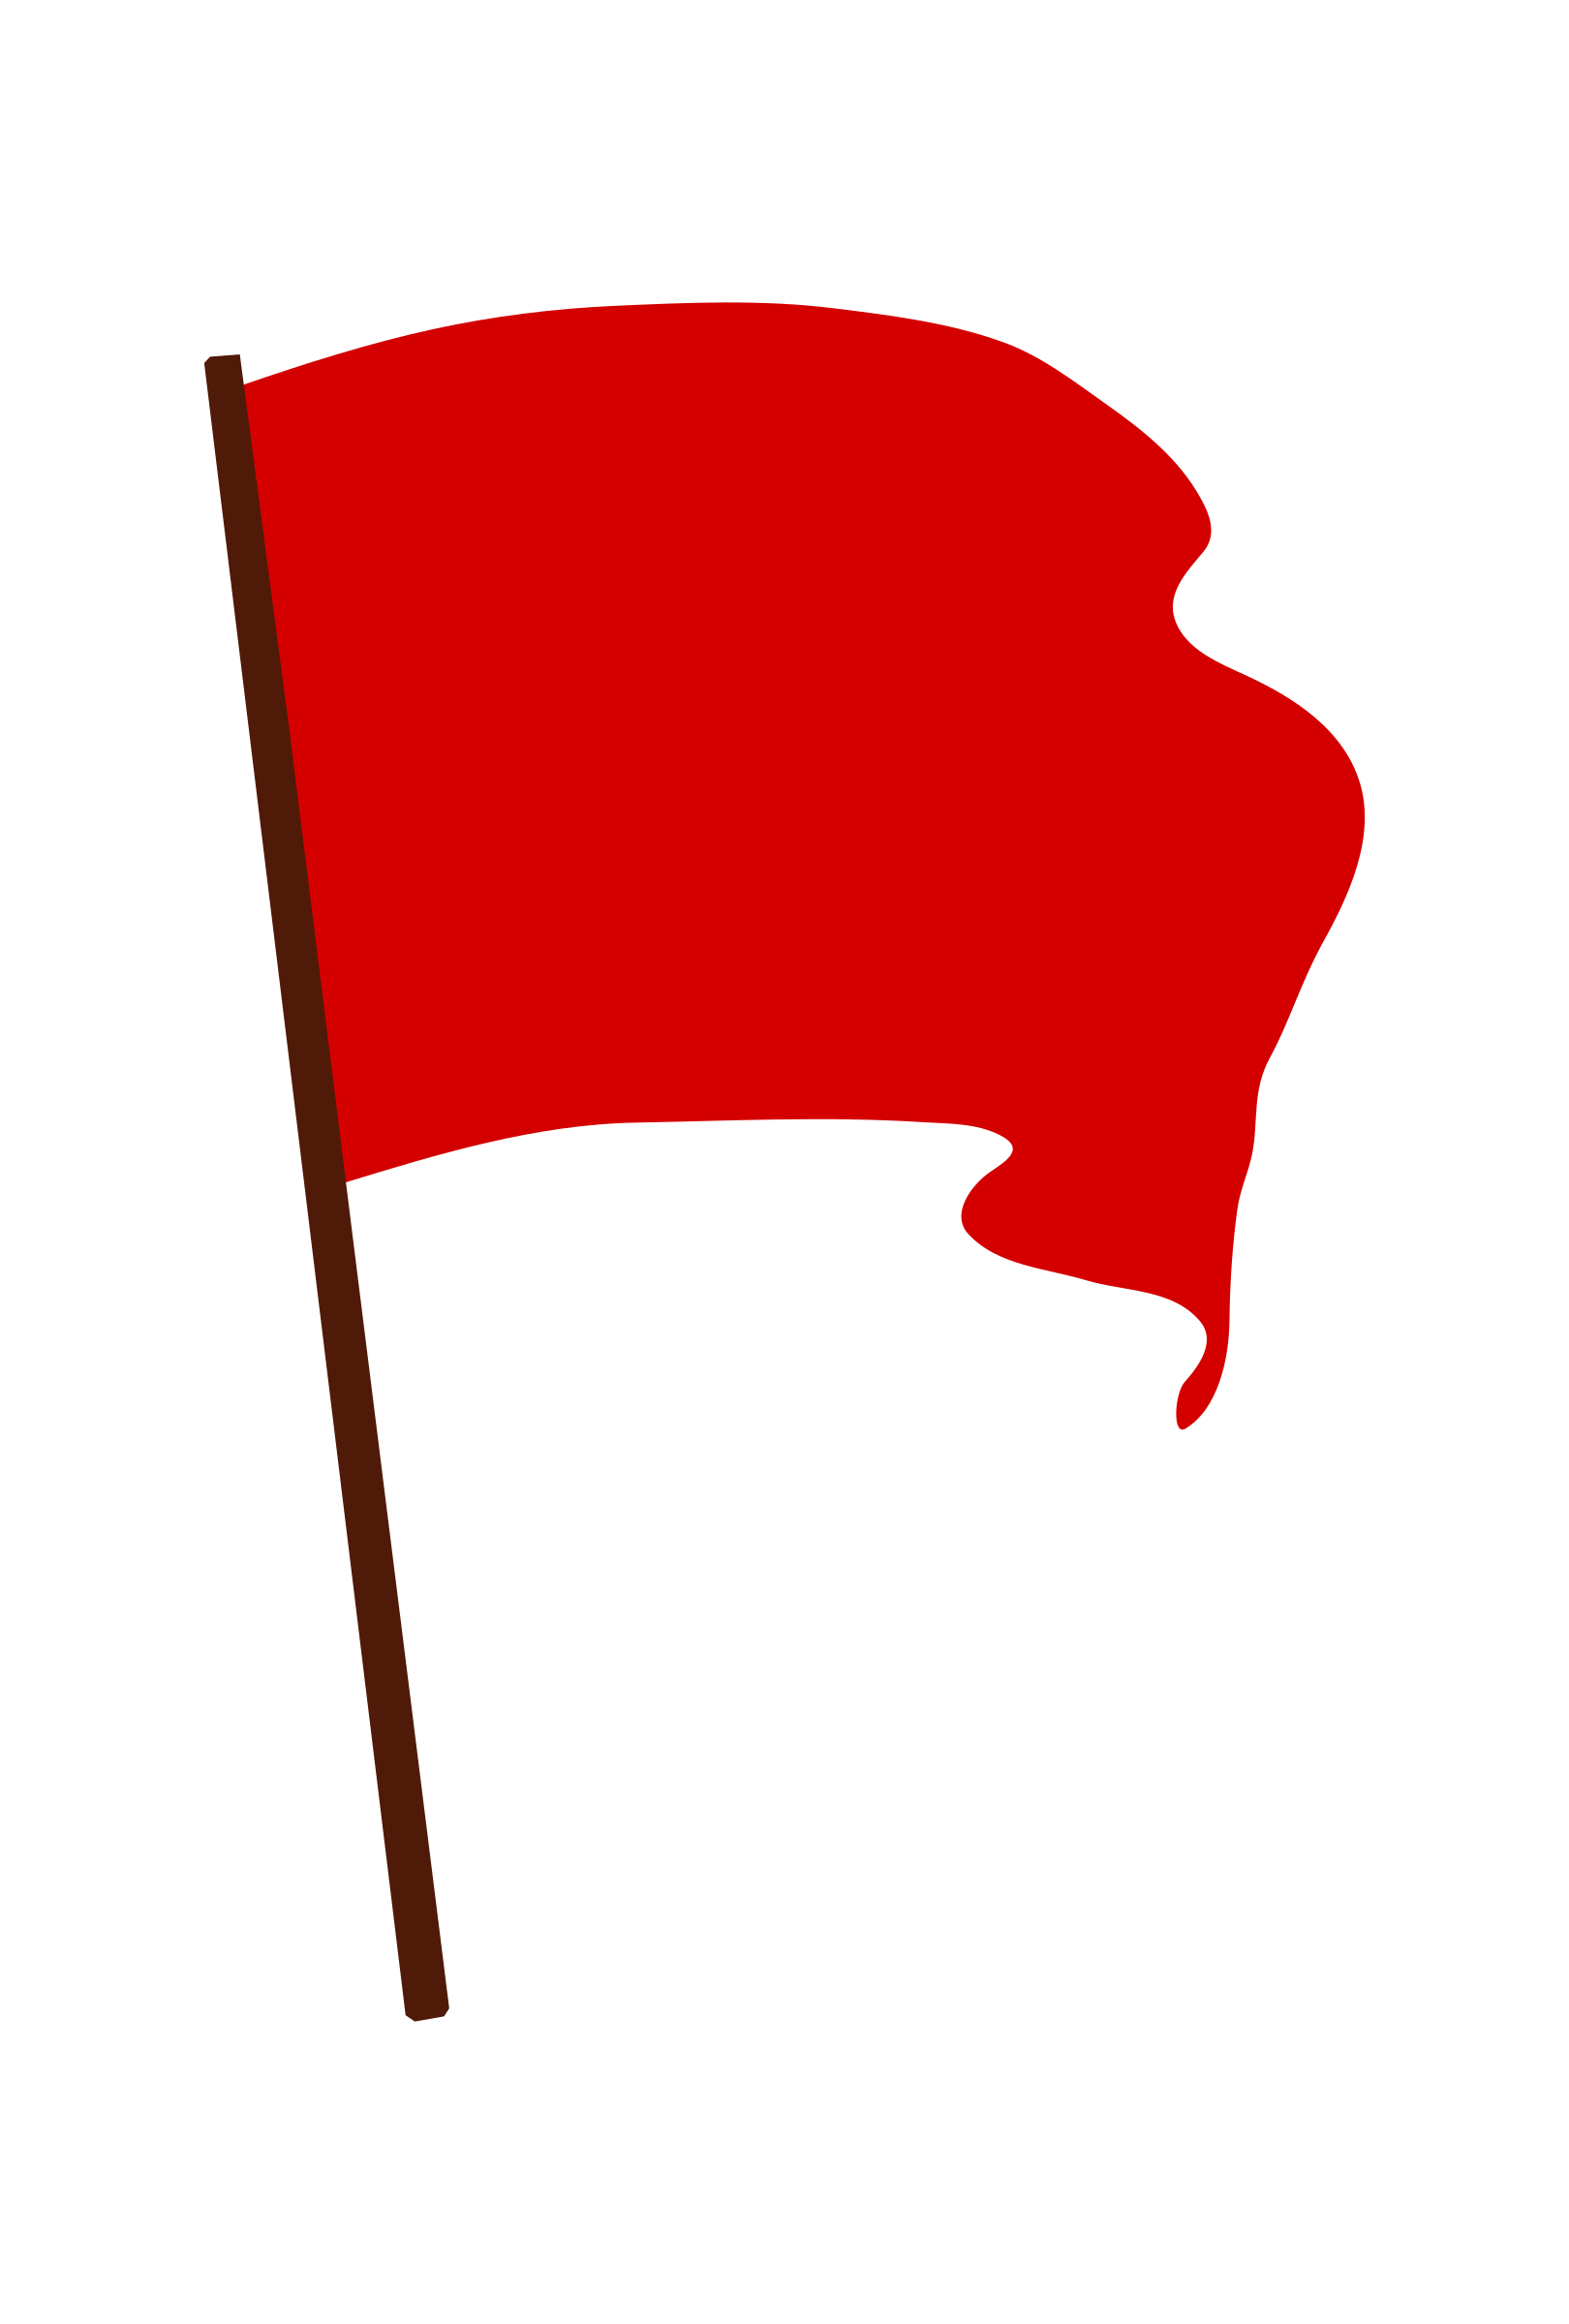 Waving Red Flag By Worker A Red Flag On Openclipart Red Flag Flag Red